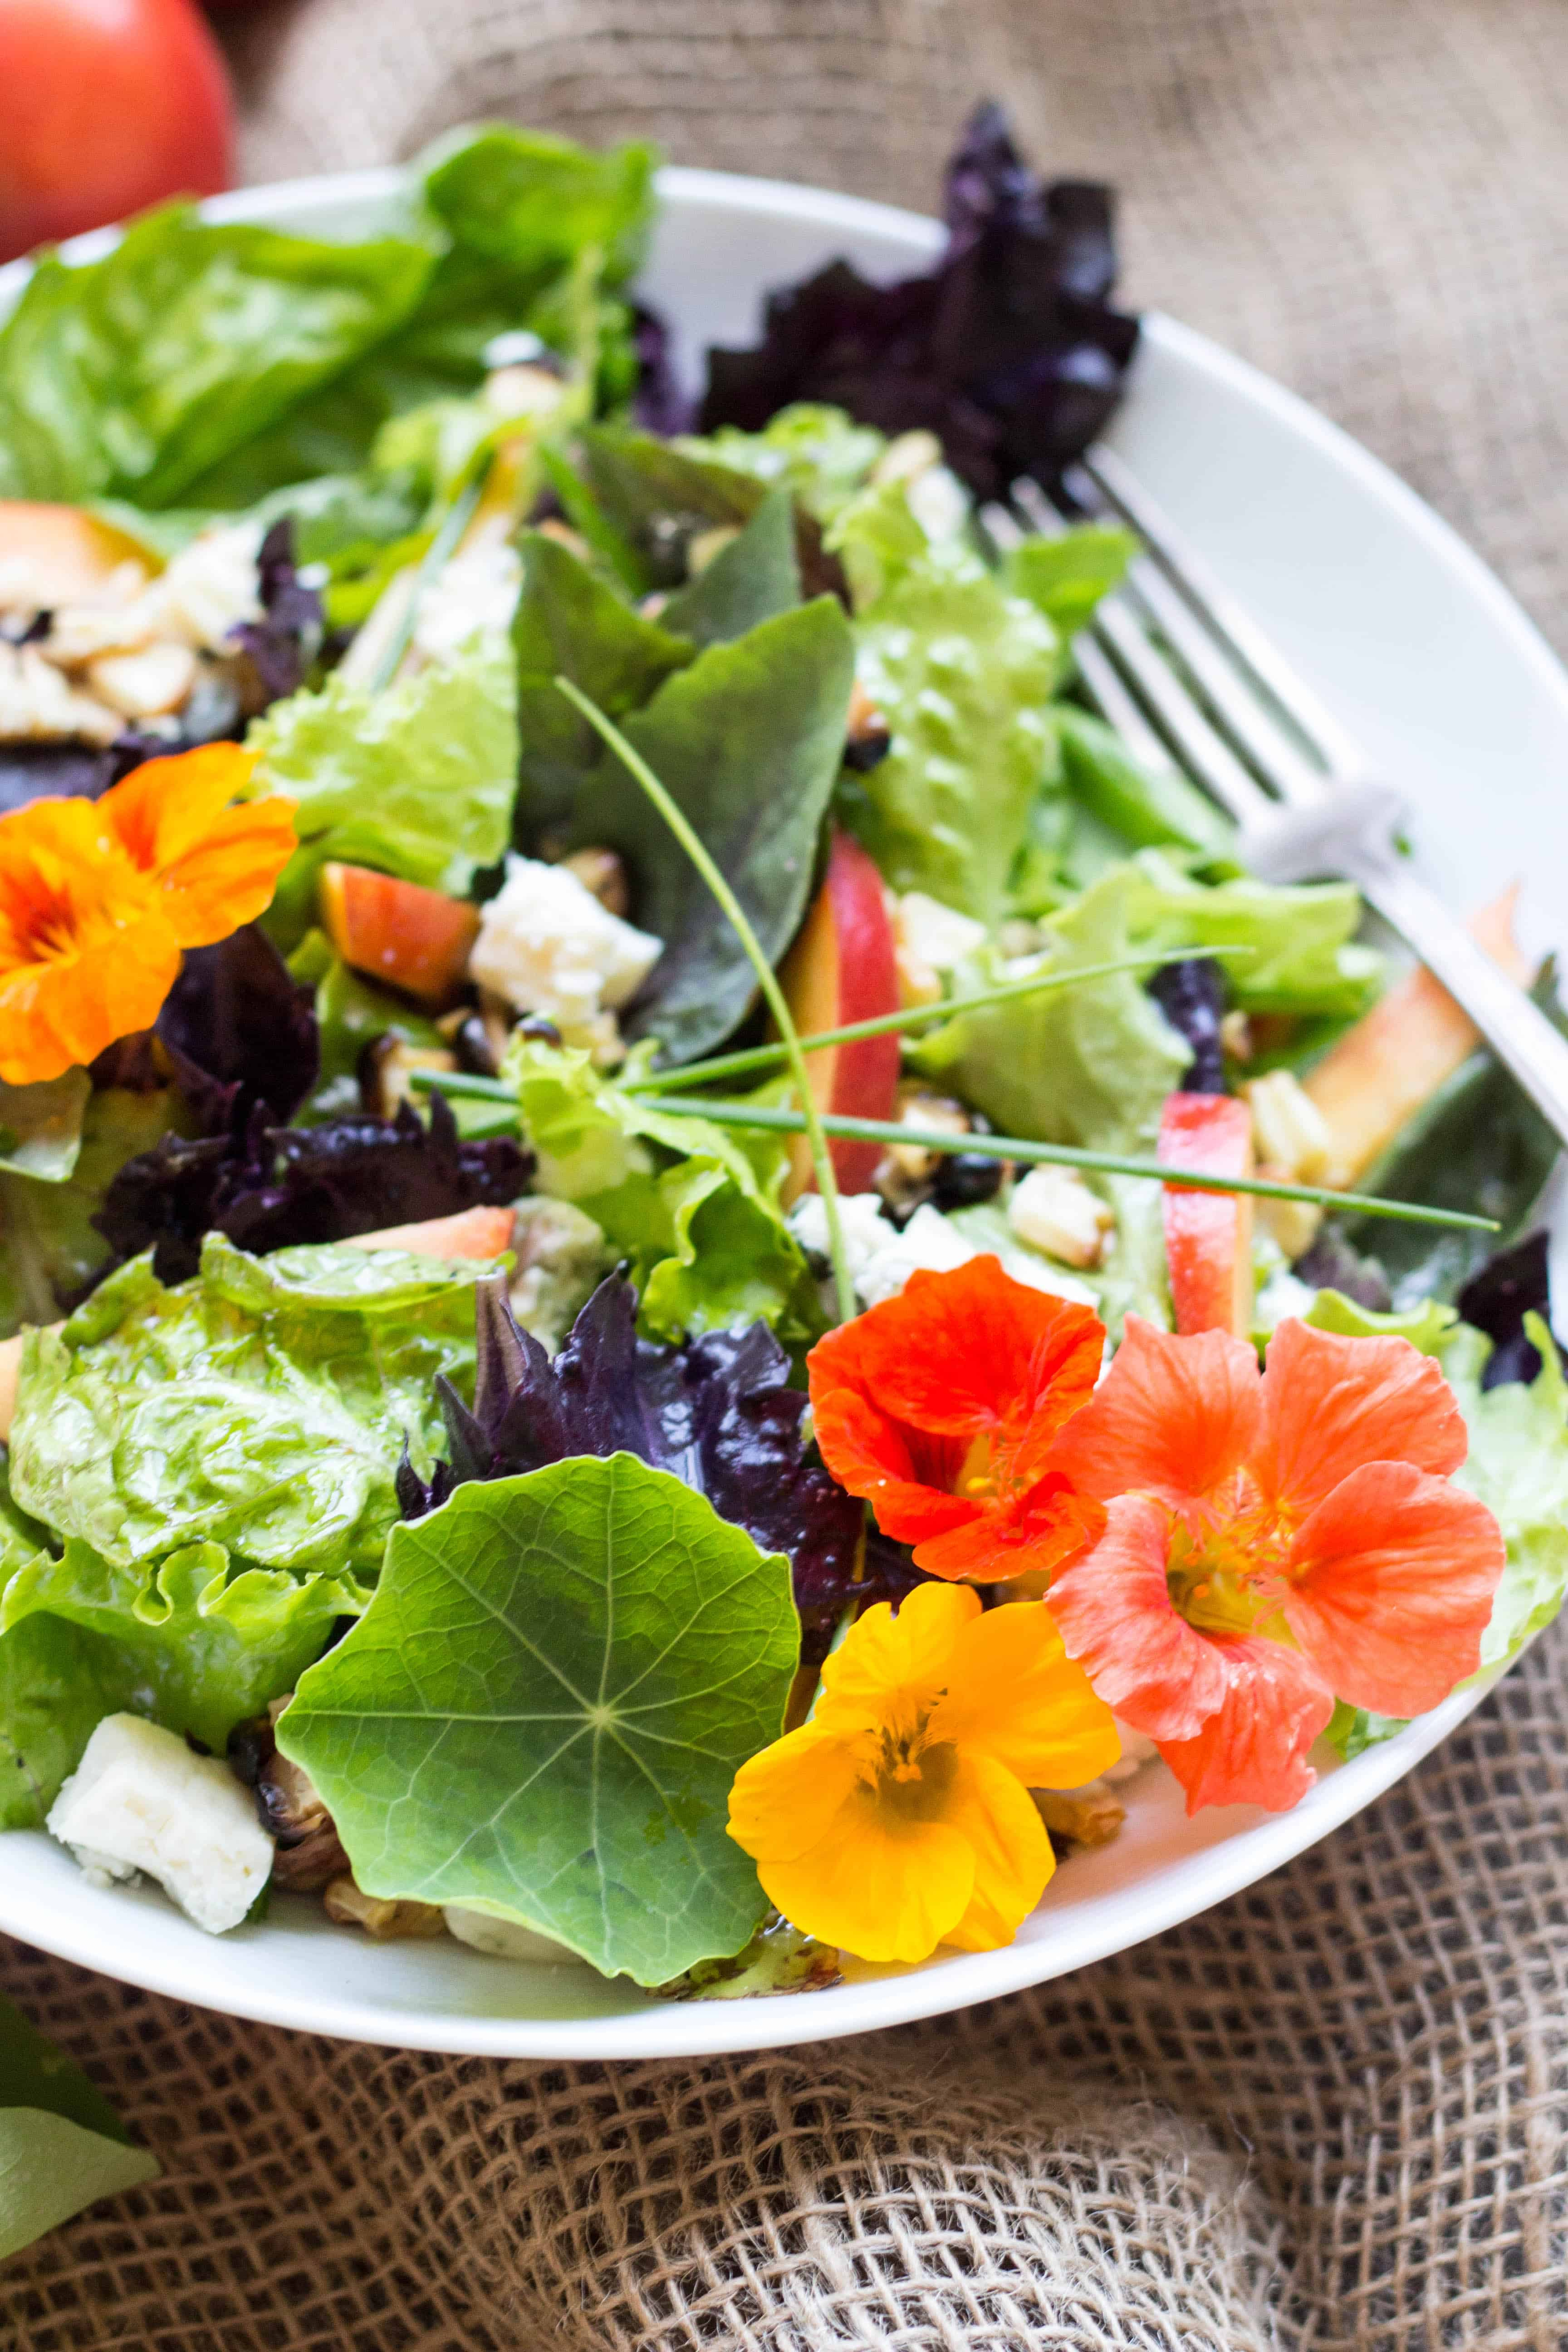 A plate of lettuce and edible flowers.